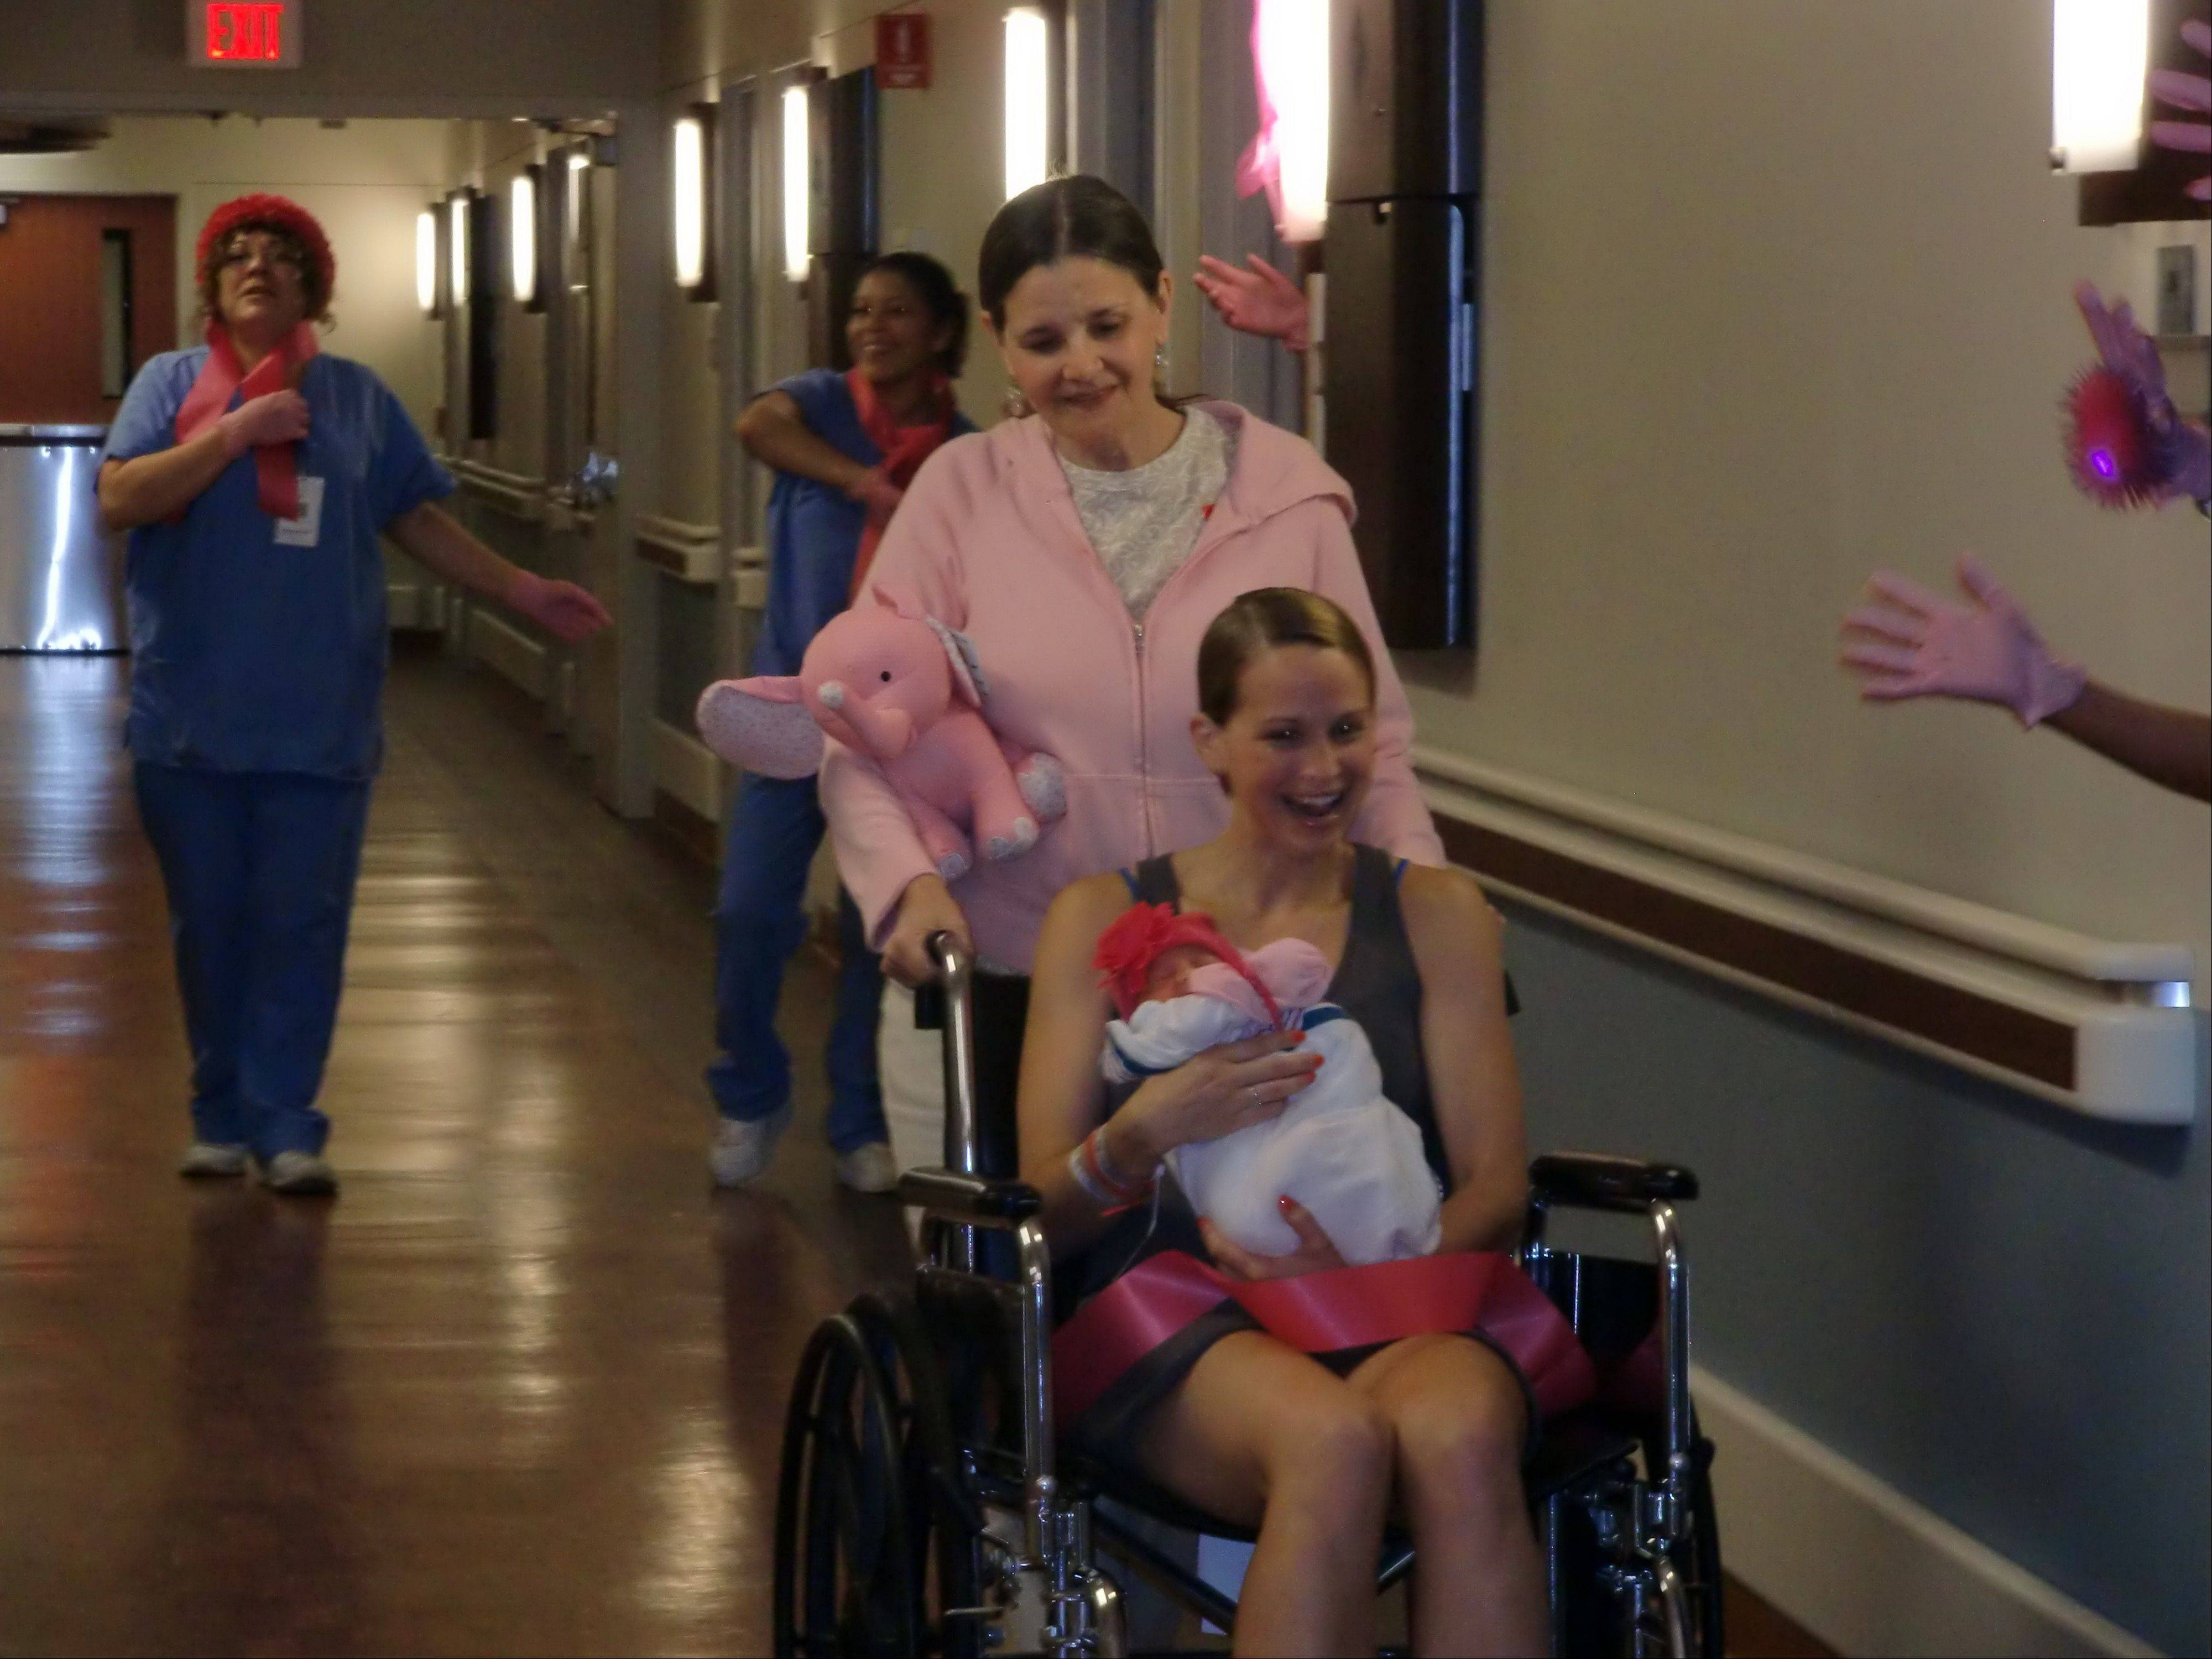 Even new moms and their babies got into the act during Good Shepherd's Pink Glove video filming.